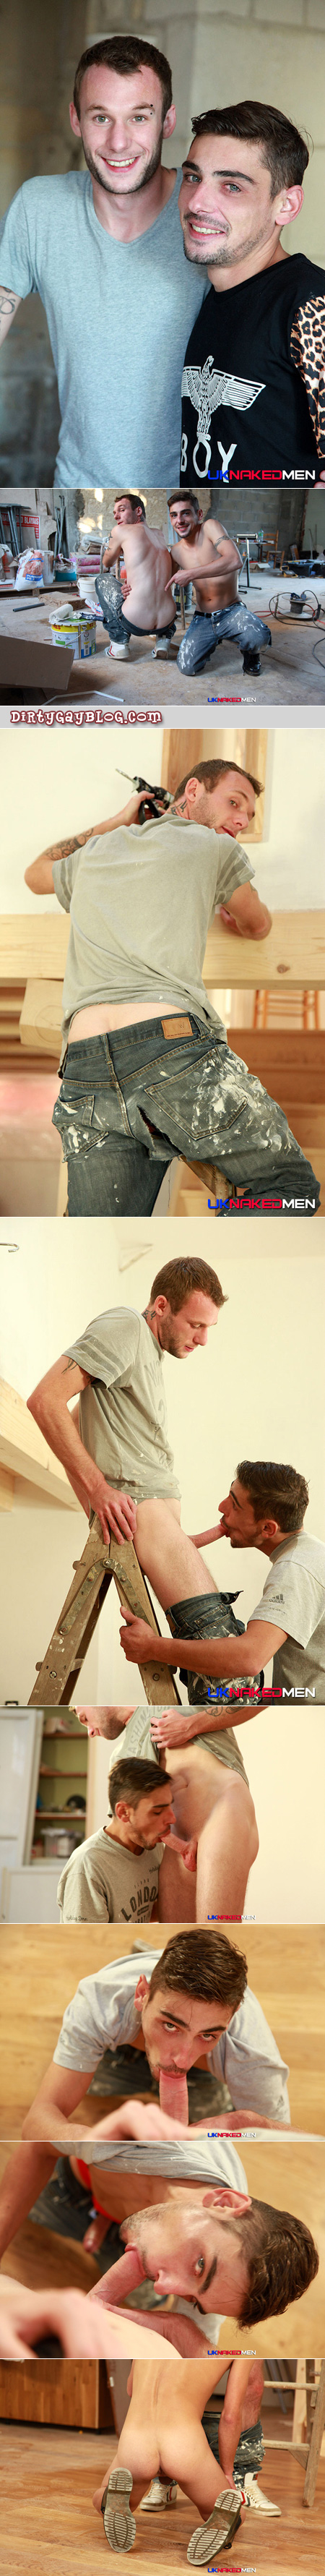 Horny young painter checks out his coworker's butt through his ripped jeans.